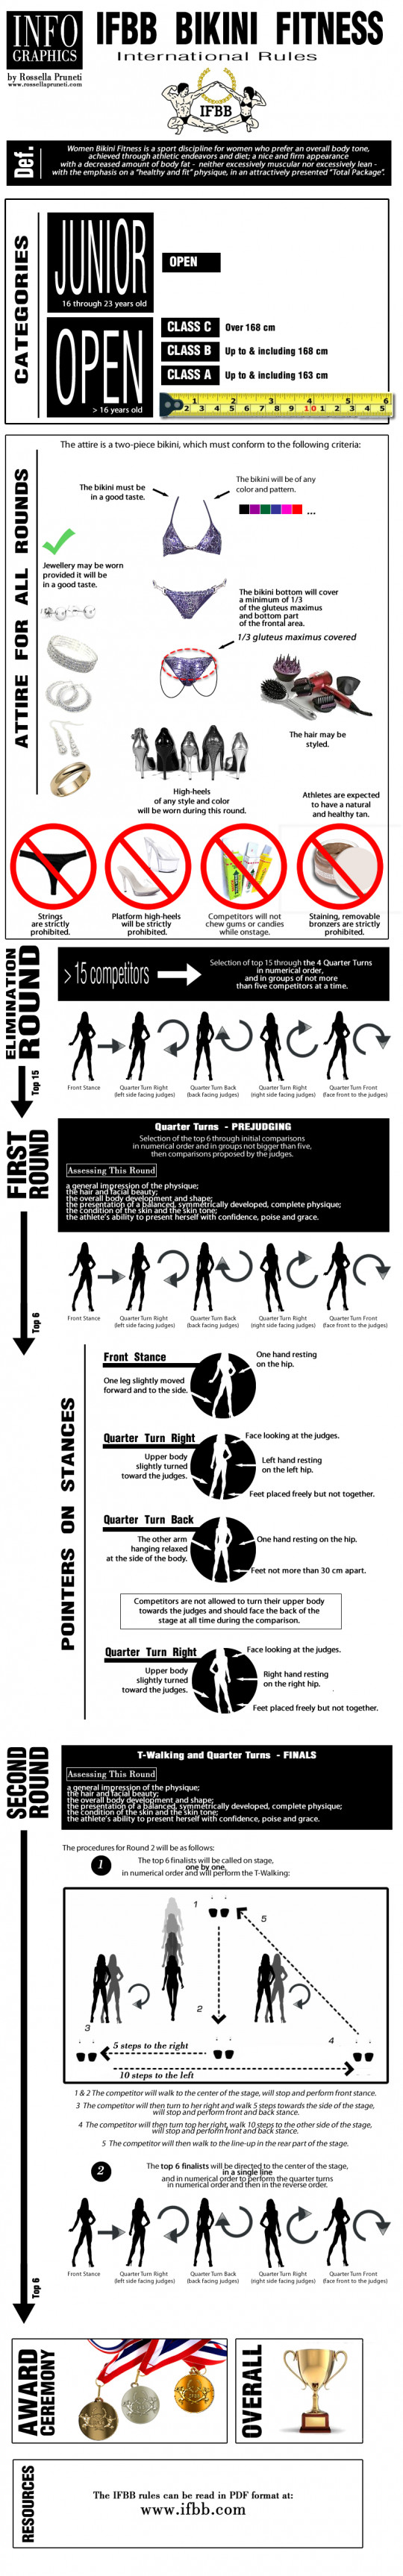 IFBB Bikini Fitness - International Rules (as of July 2013)